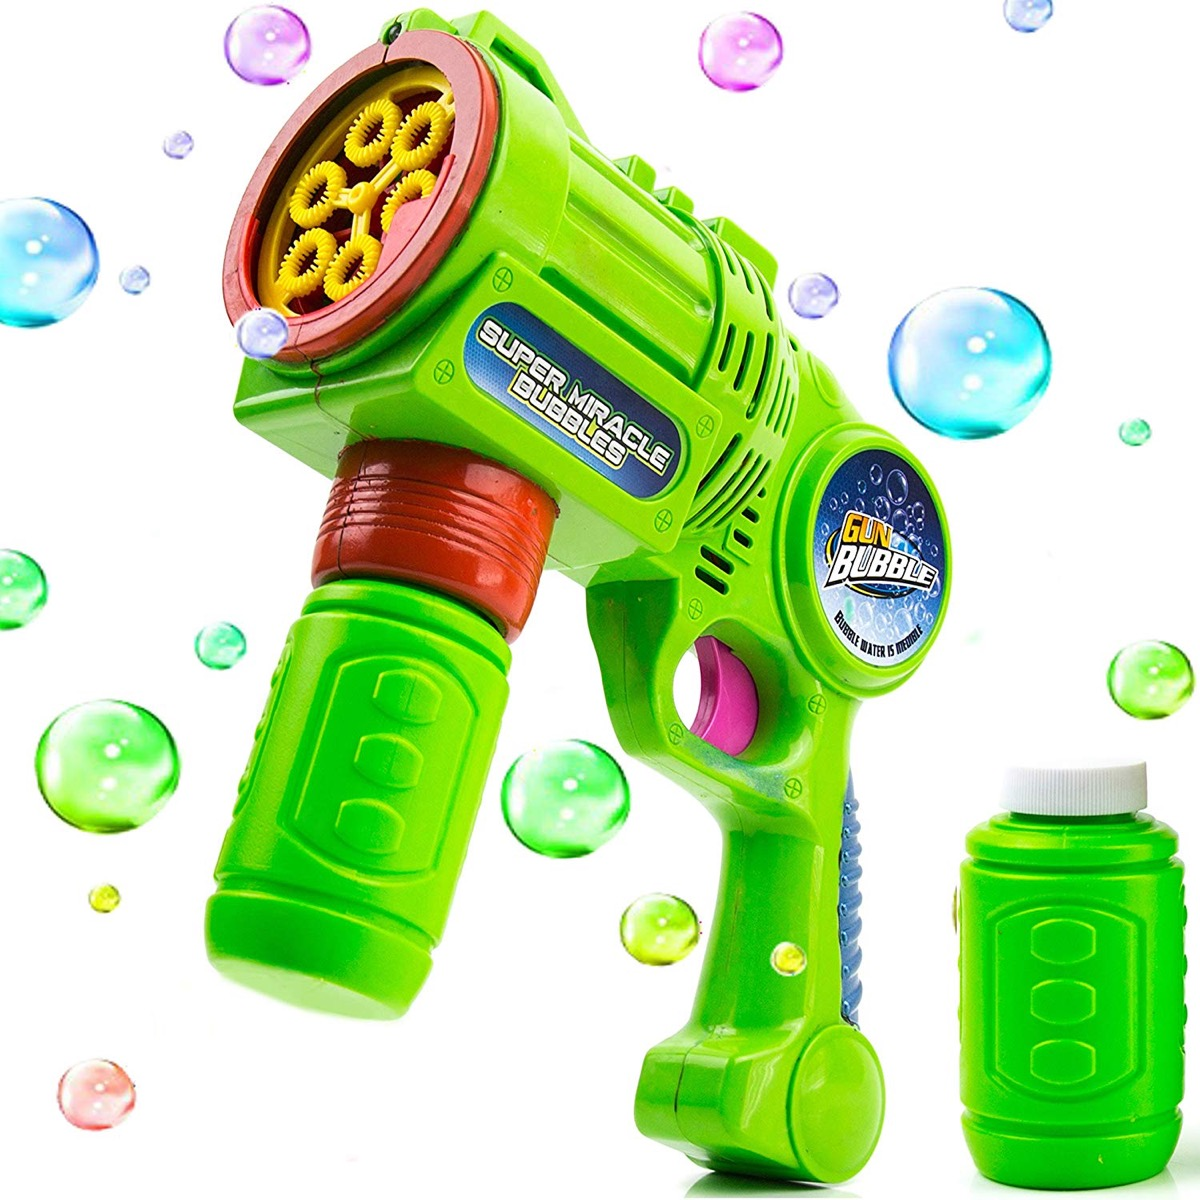 green bubble machine, best outdoor toys for toddlers